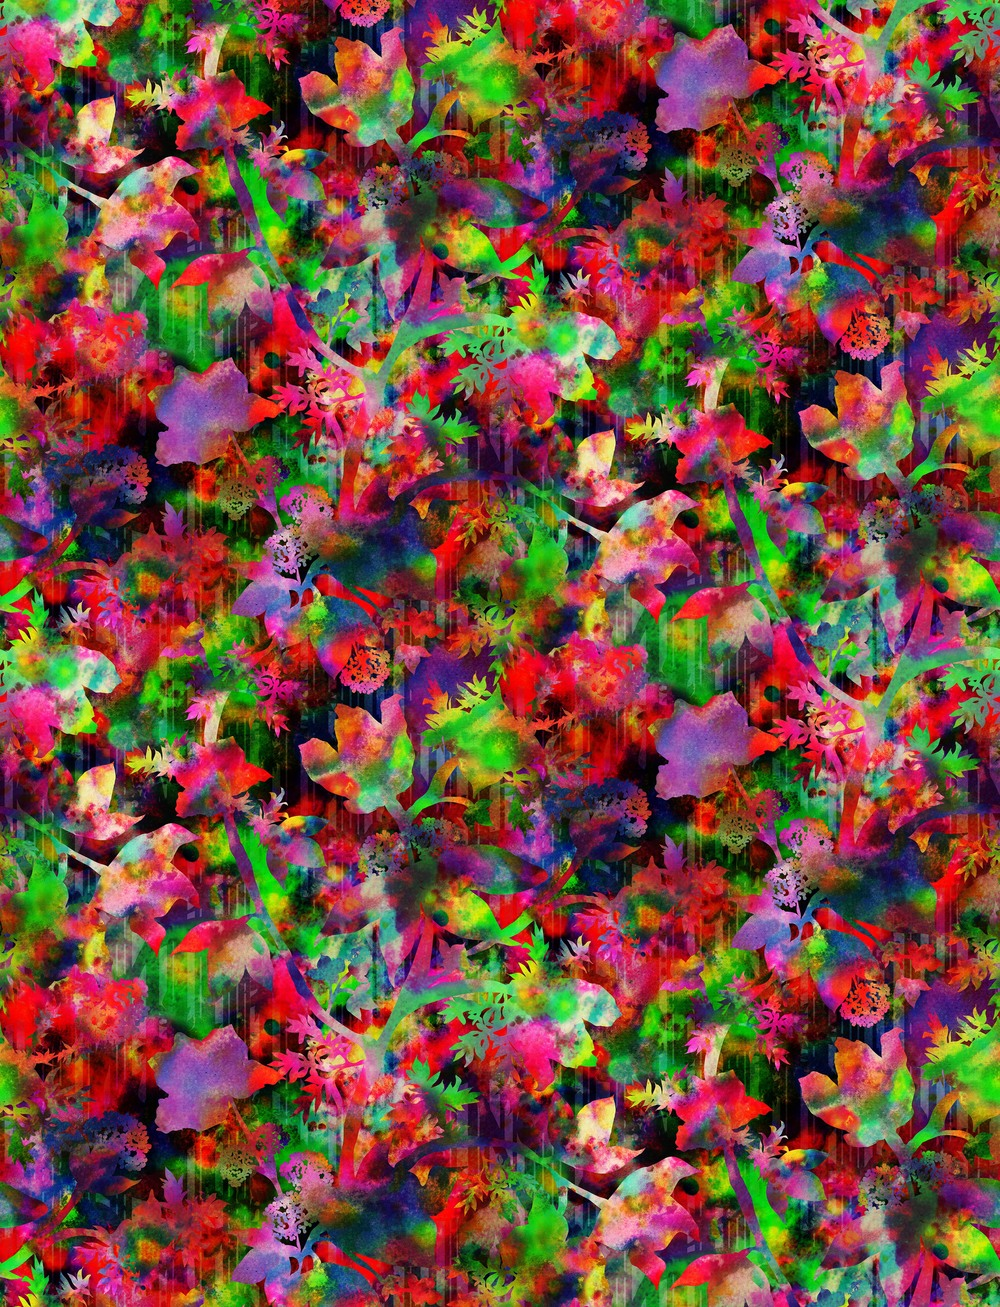 psych floral in repeatweb.jpg